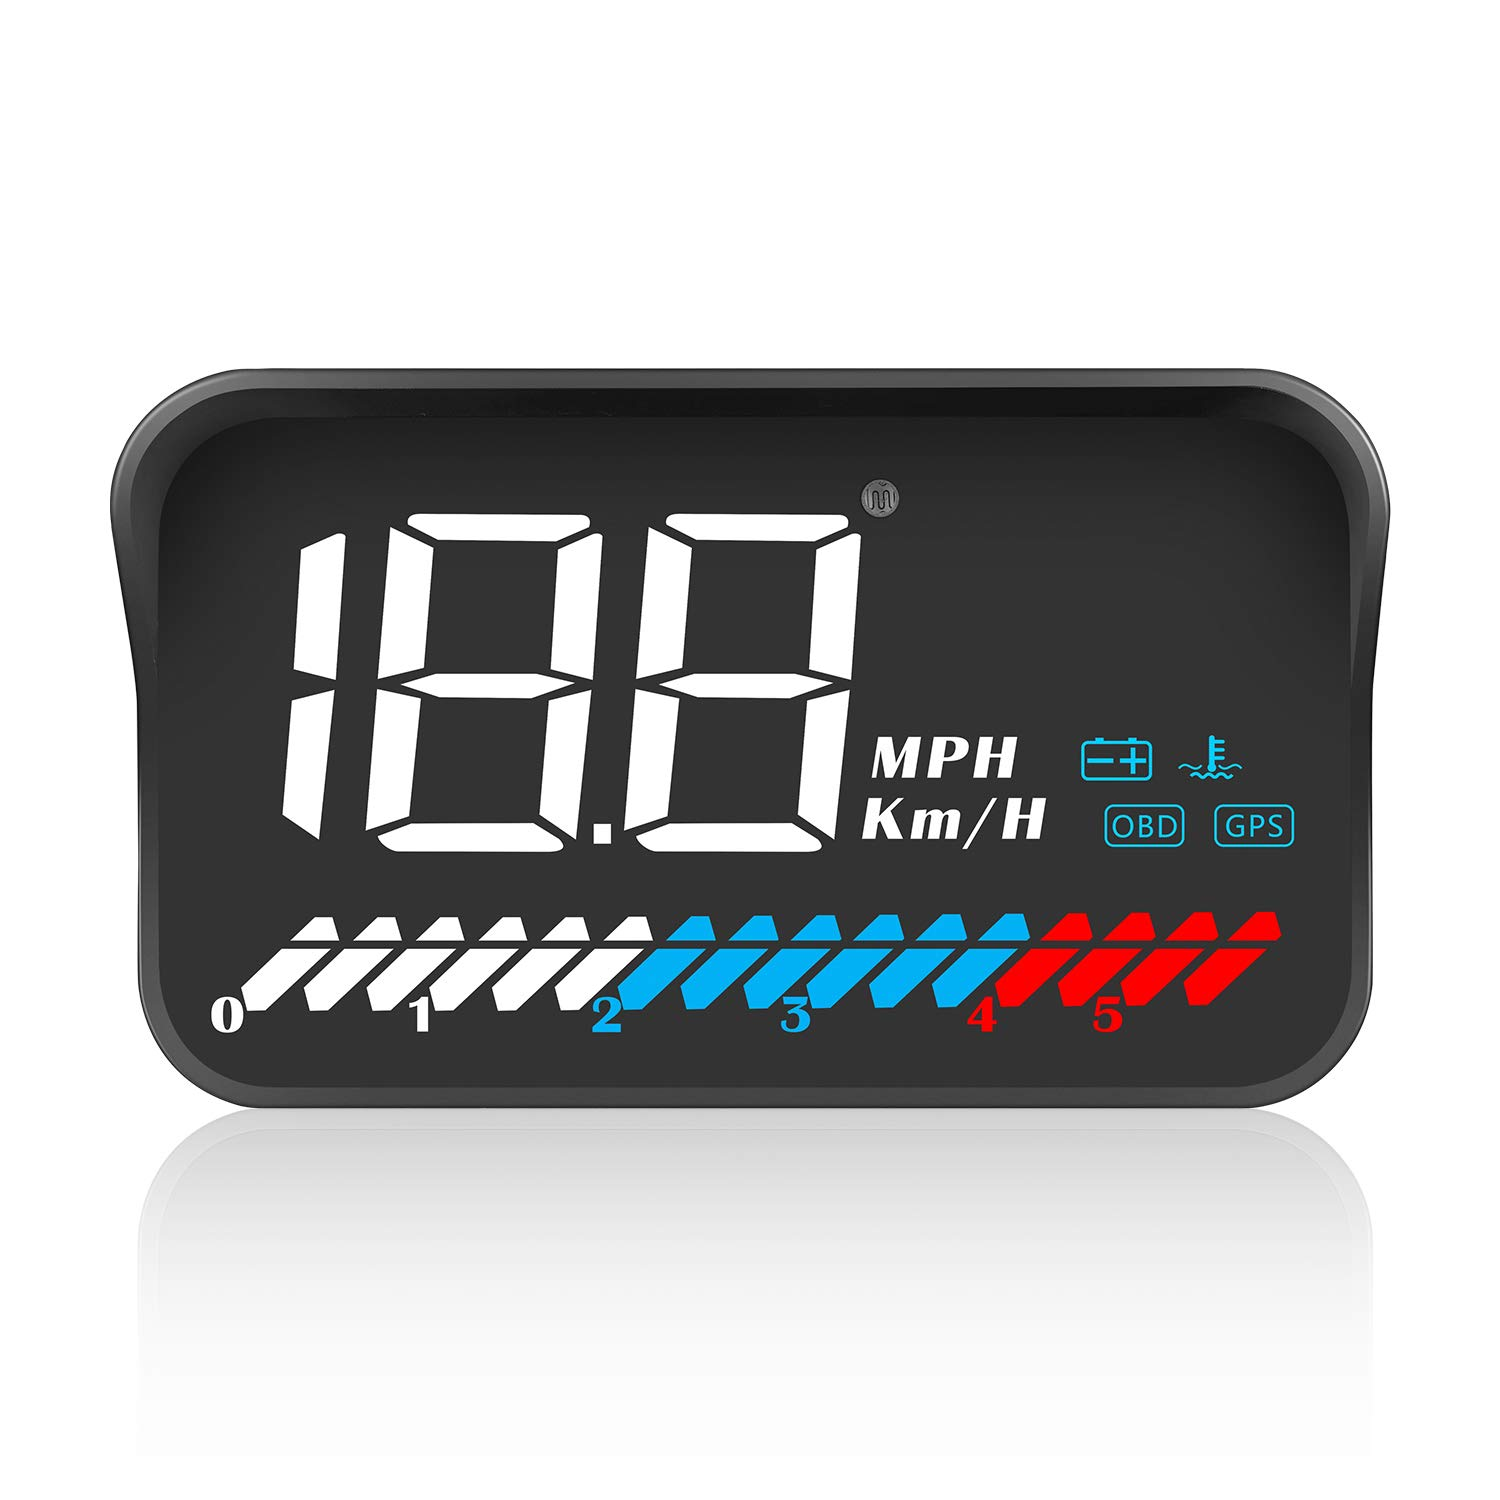 TIMPROVE 3.5'' Universal Car HUD Head Up Display OBD2 GPS Dual Mode Speedometer Tachometer, Km/h MPH, Error Code Clear, Engine RPM, Multifunctional Car Speed Display Projector for All Vehicles by TIMPROVE